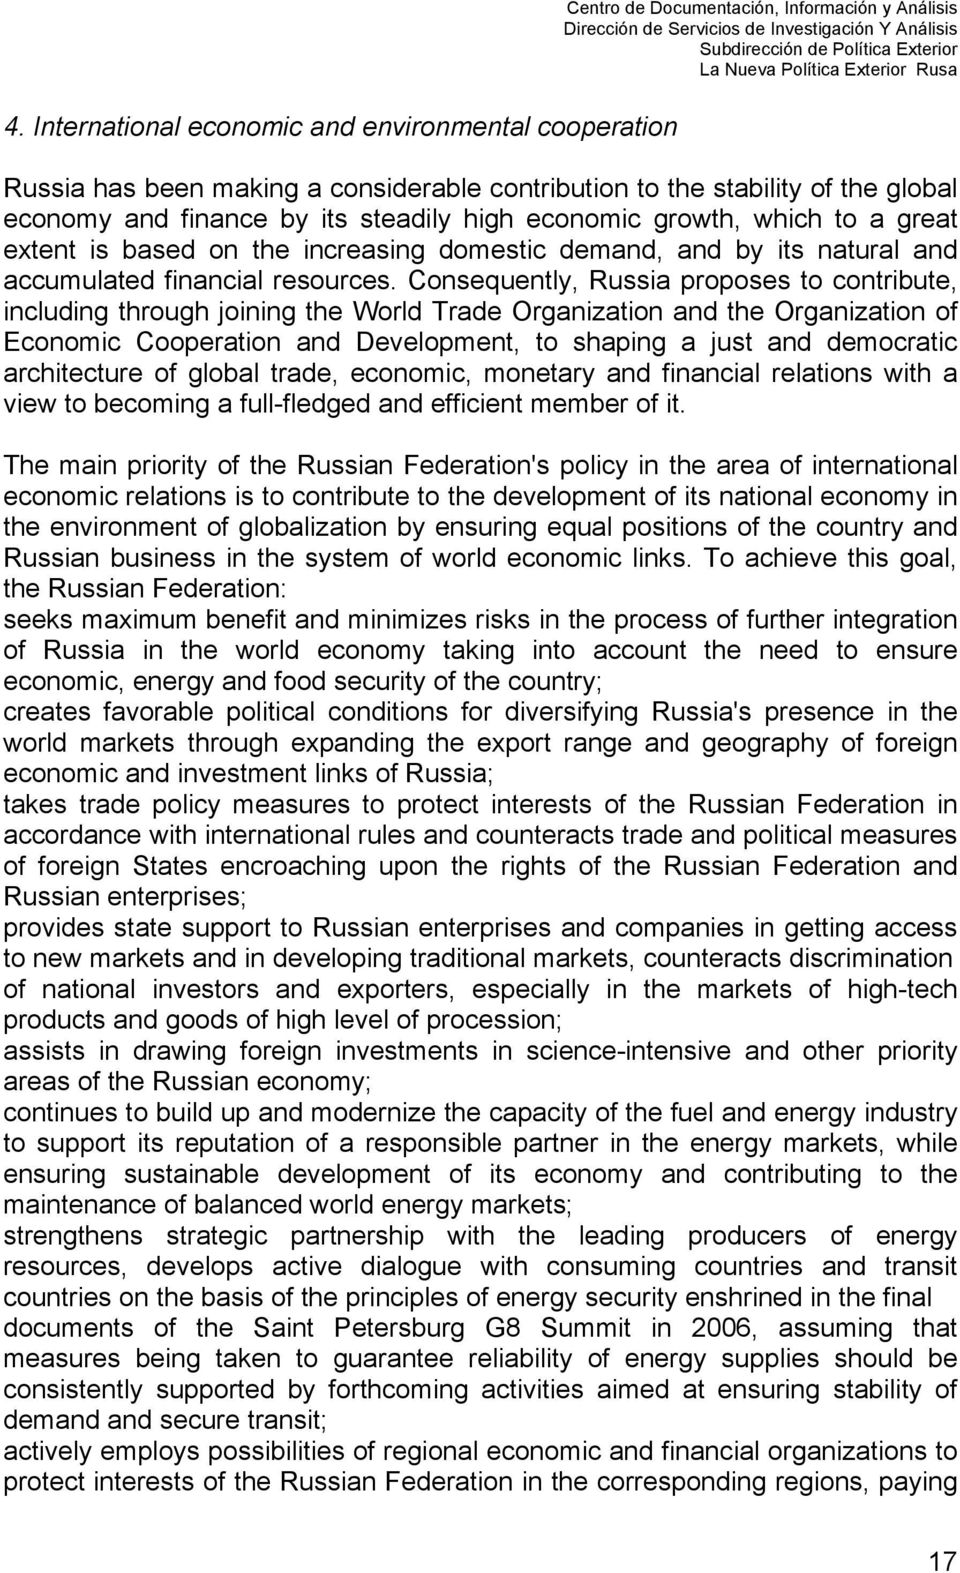 Consequently, Russia proposes to contribute, including through joining the World Trade Organization and the Organization of Economic Cooperation and Development, to shaping a just and democratic